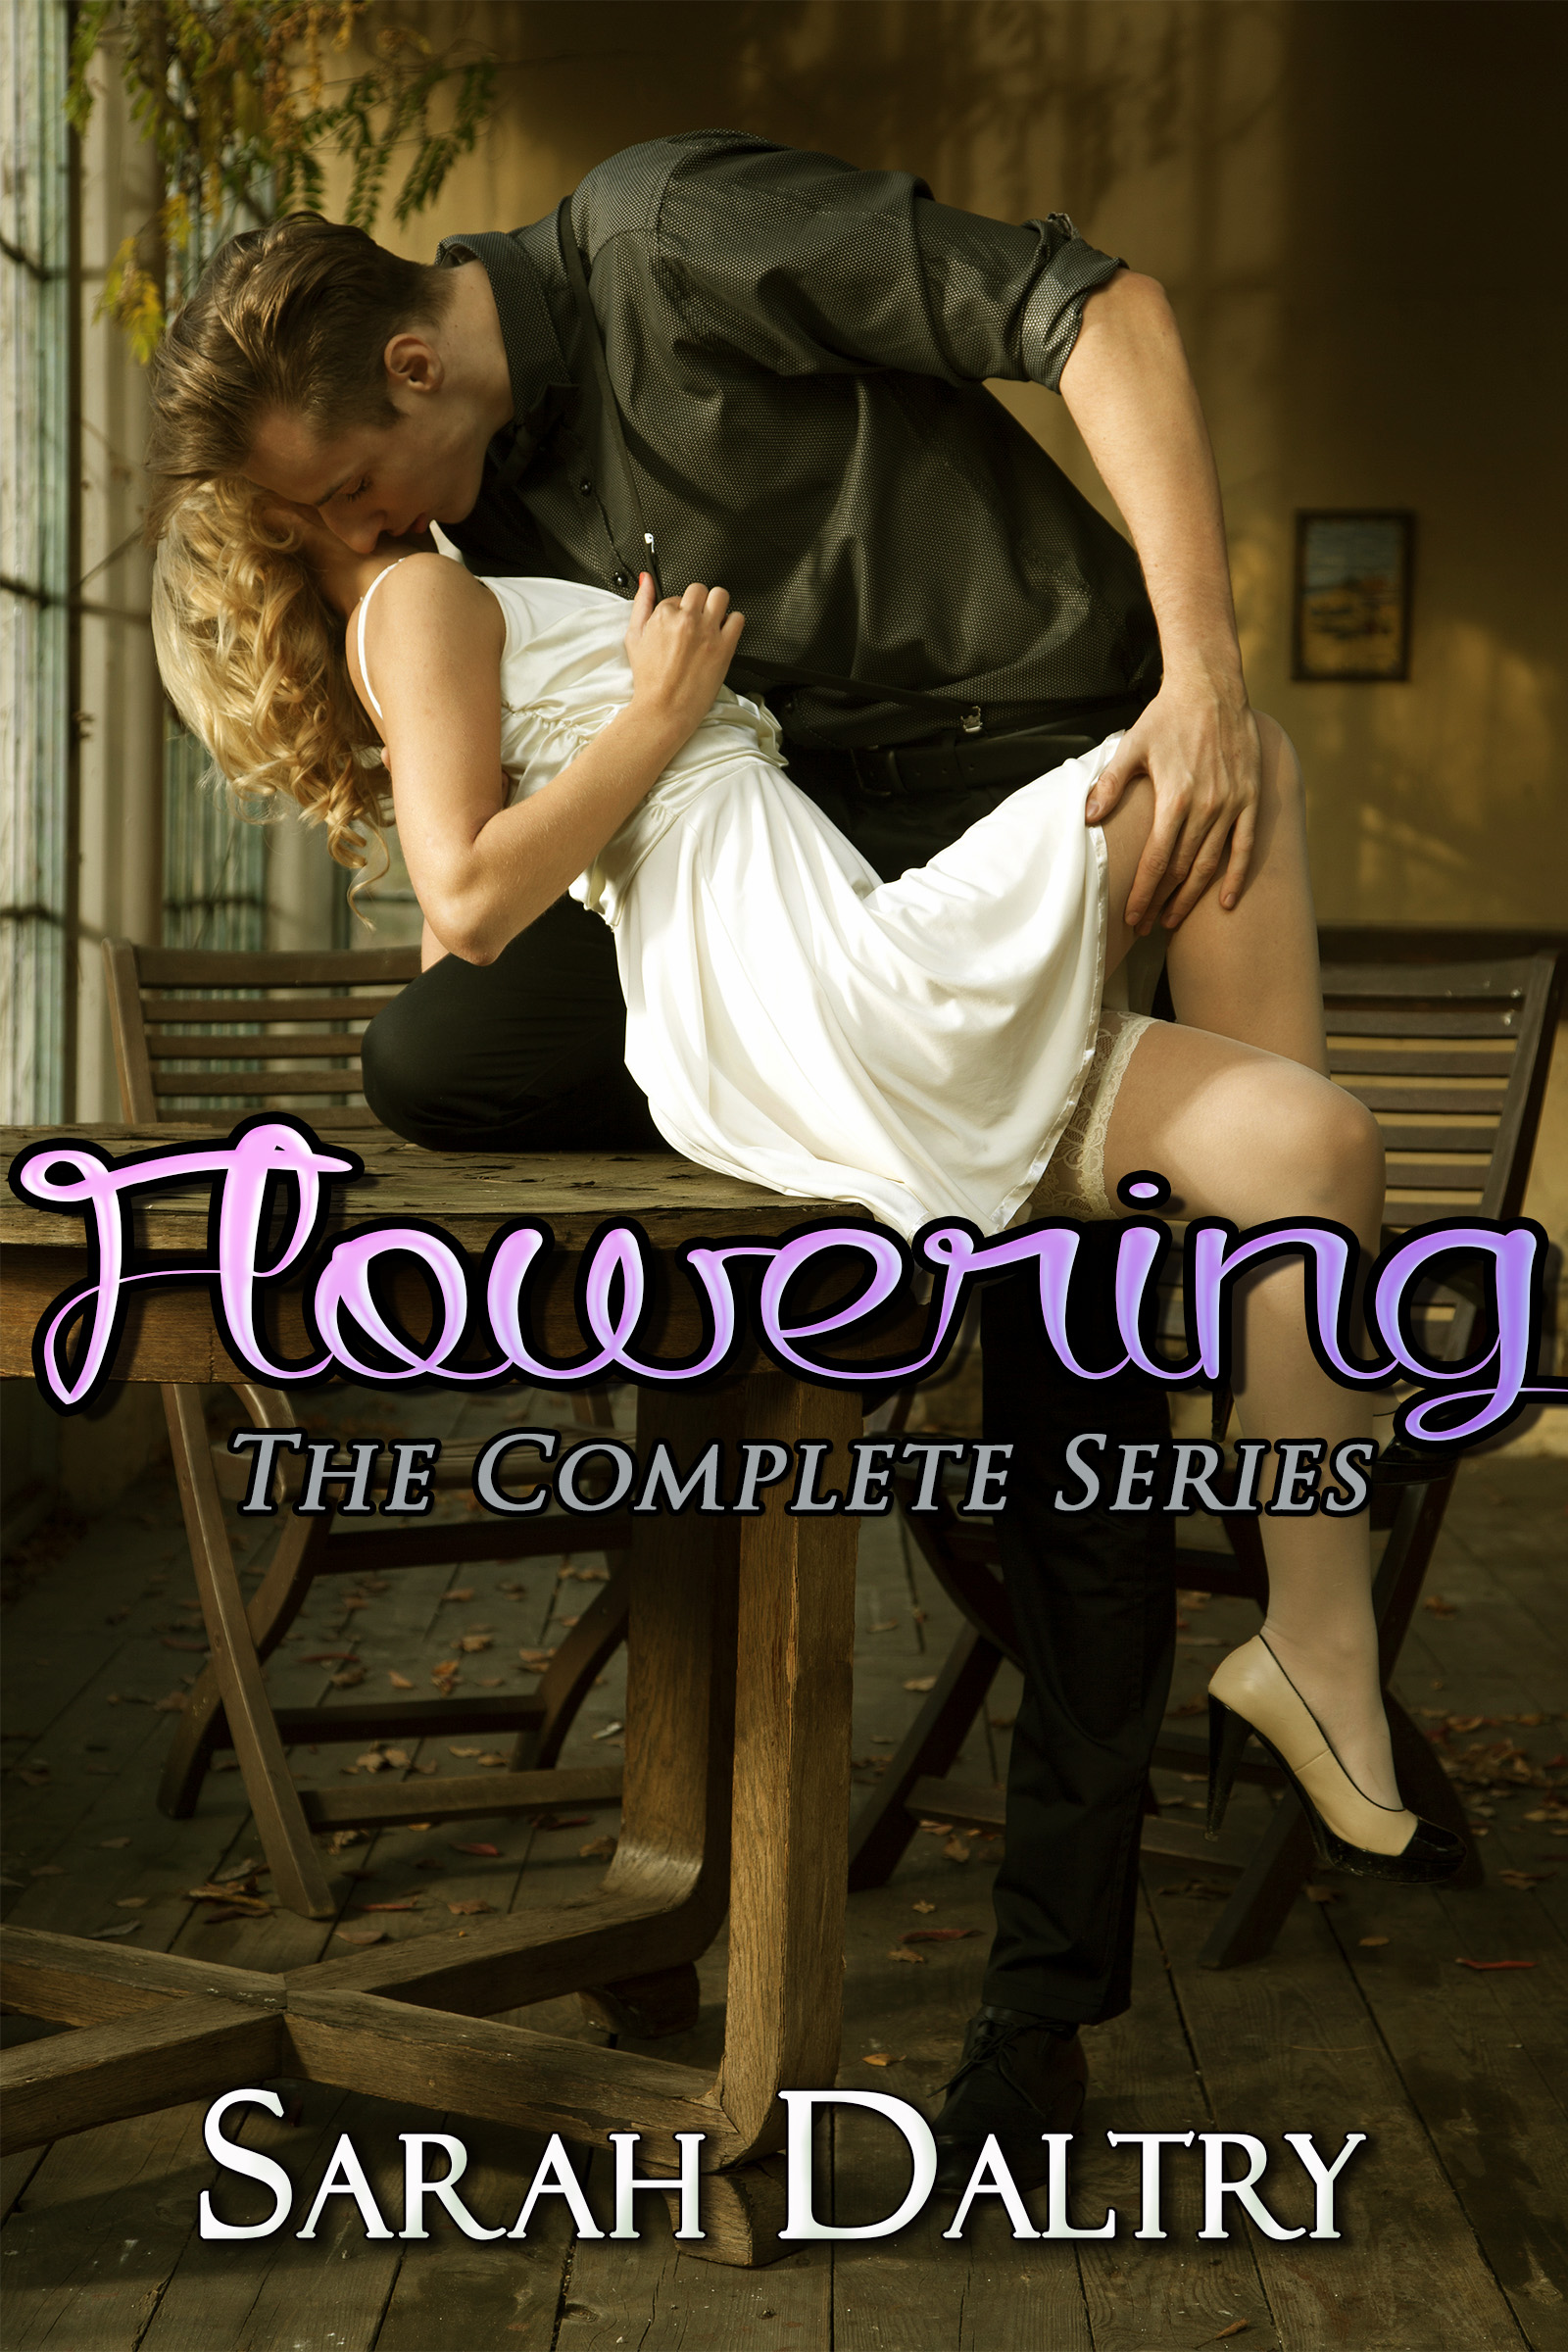 Sarah Daltry - Flowering: The Complete Series